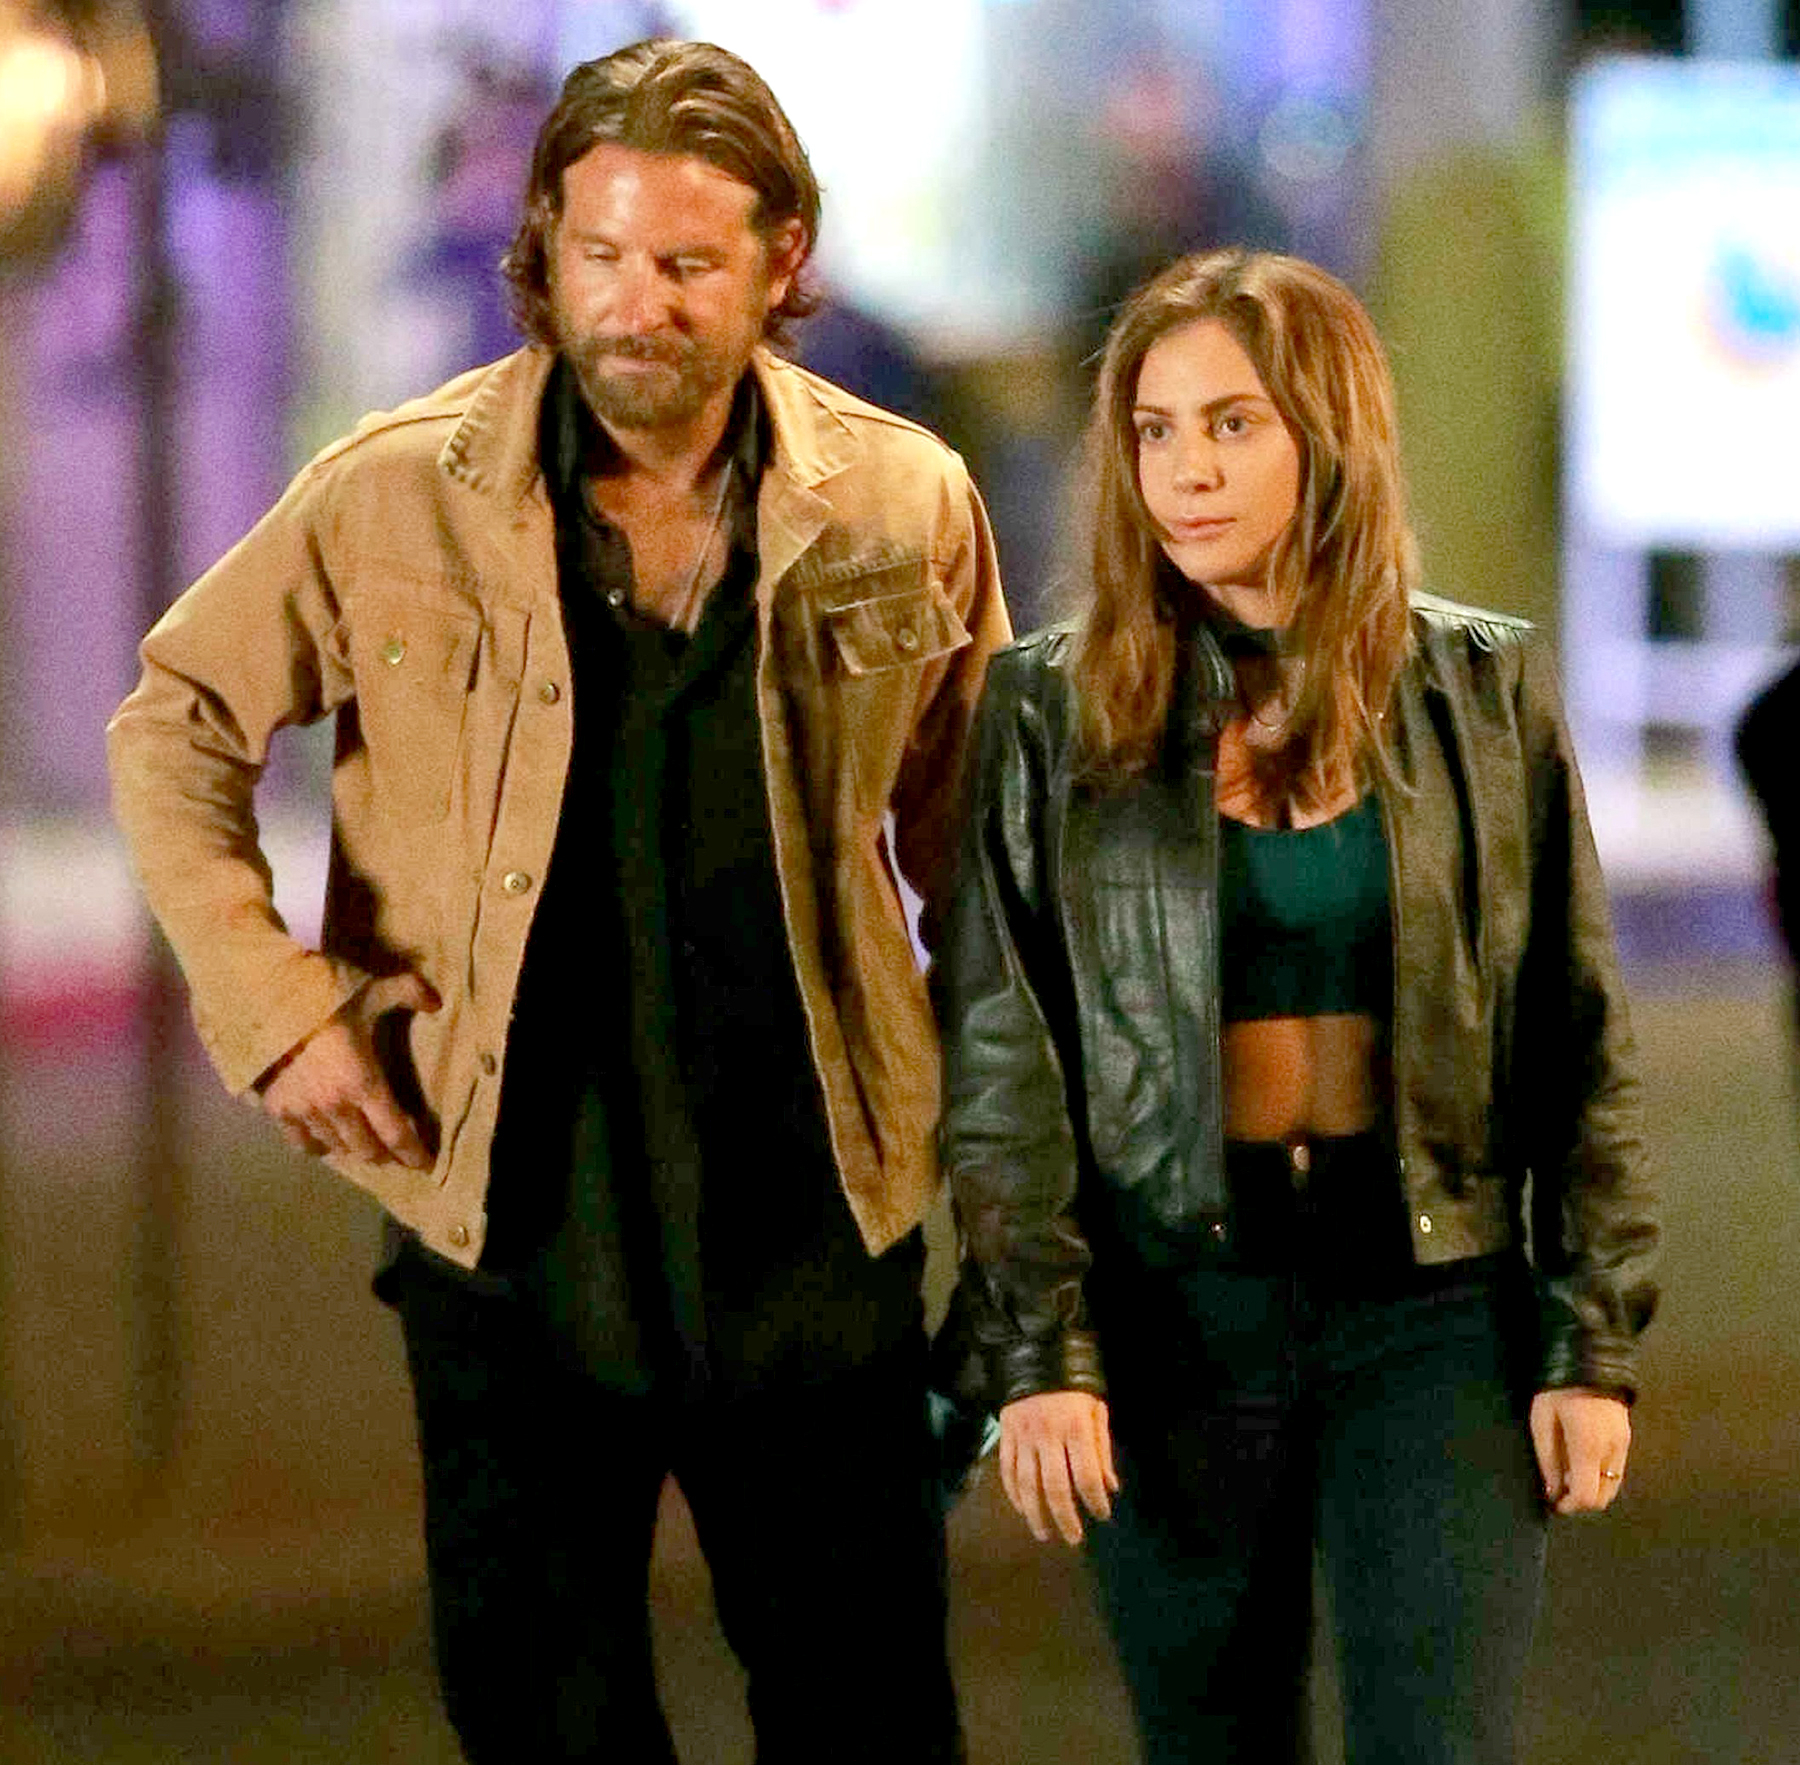 Bradley Cooper is spotted on a night time shoot for his latest project with singer Lady Gaga, 'A Star is Born' on May 5, 2017.